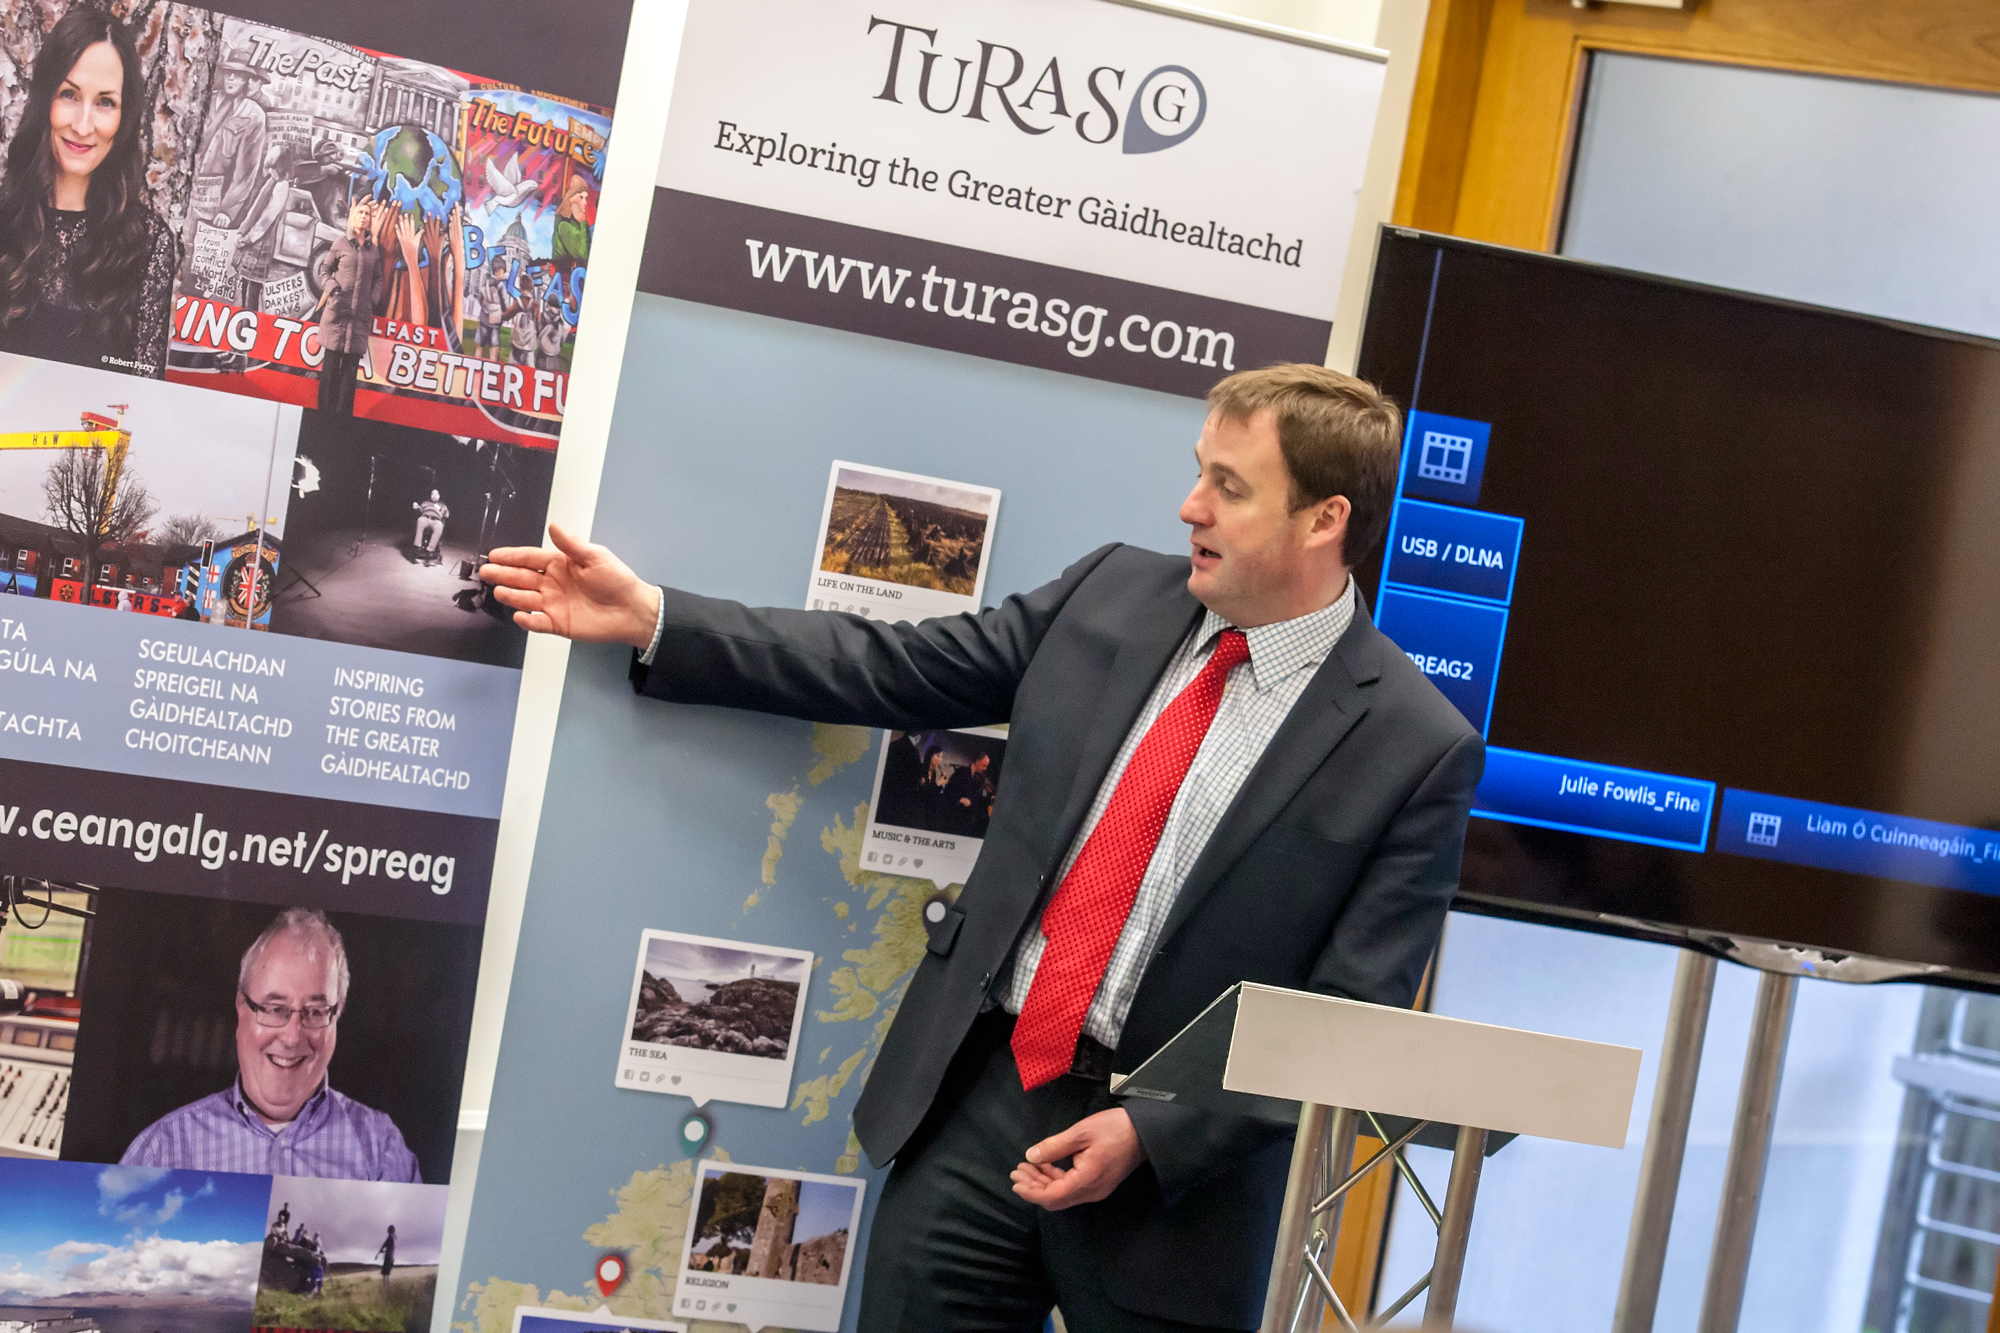 TurasG launch